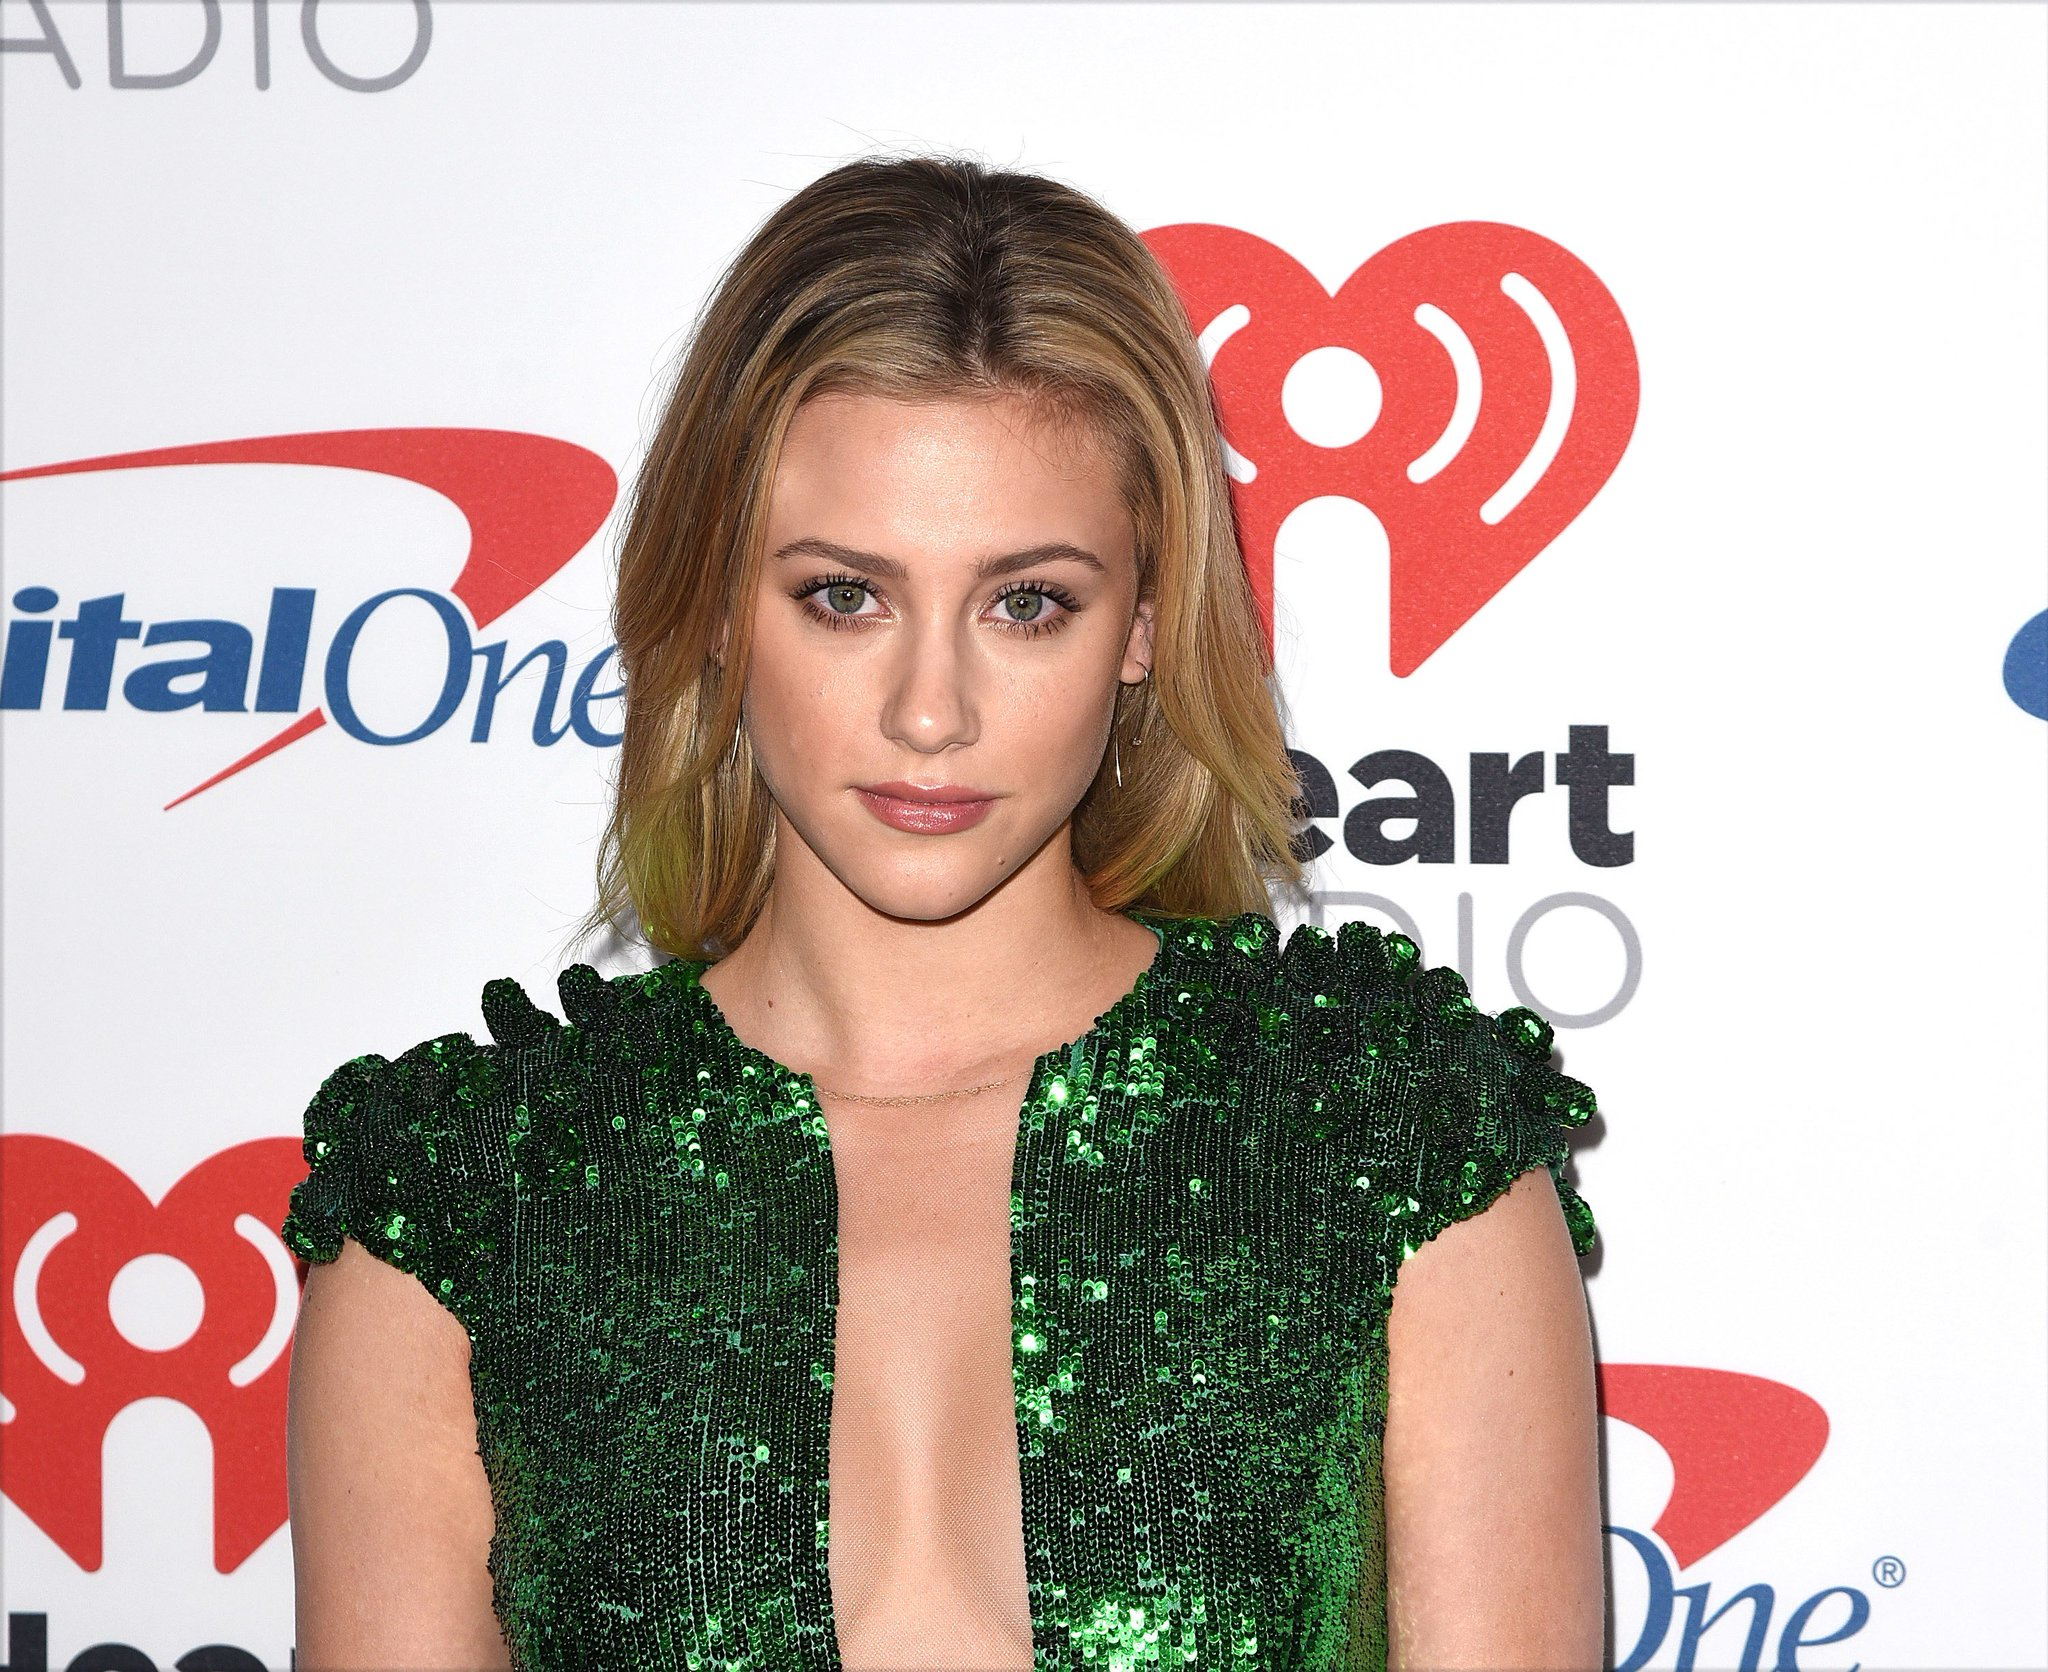 Lili Reinhart shared her own experience of sexual harassment on Tumblr: https://t.co/WVTjY2eimM https://t.co/taoBT74h86